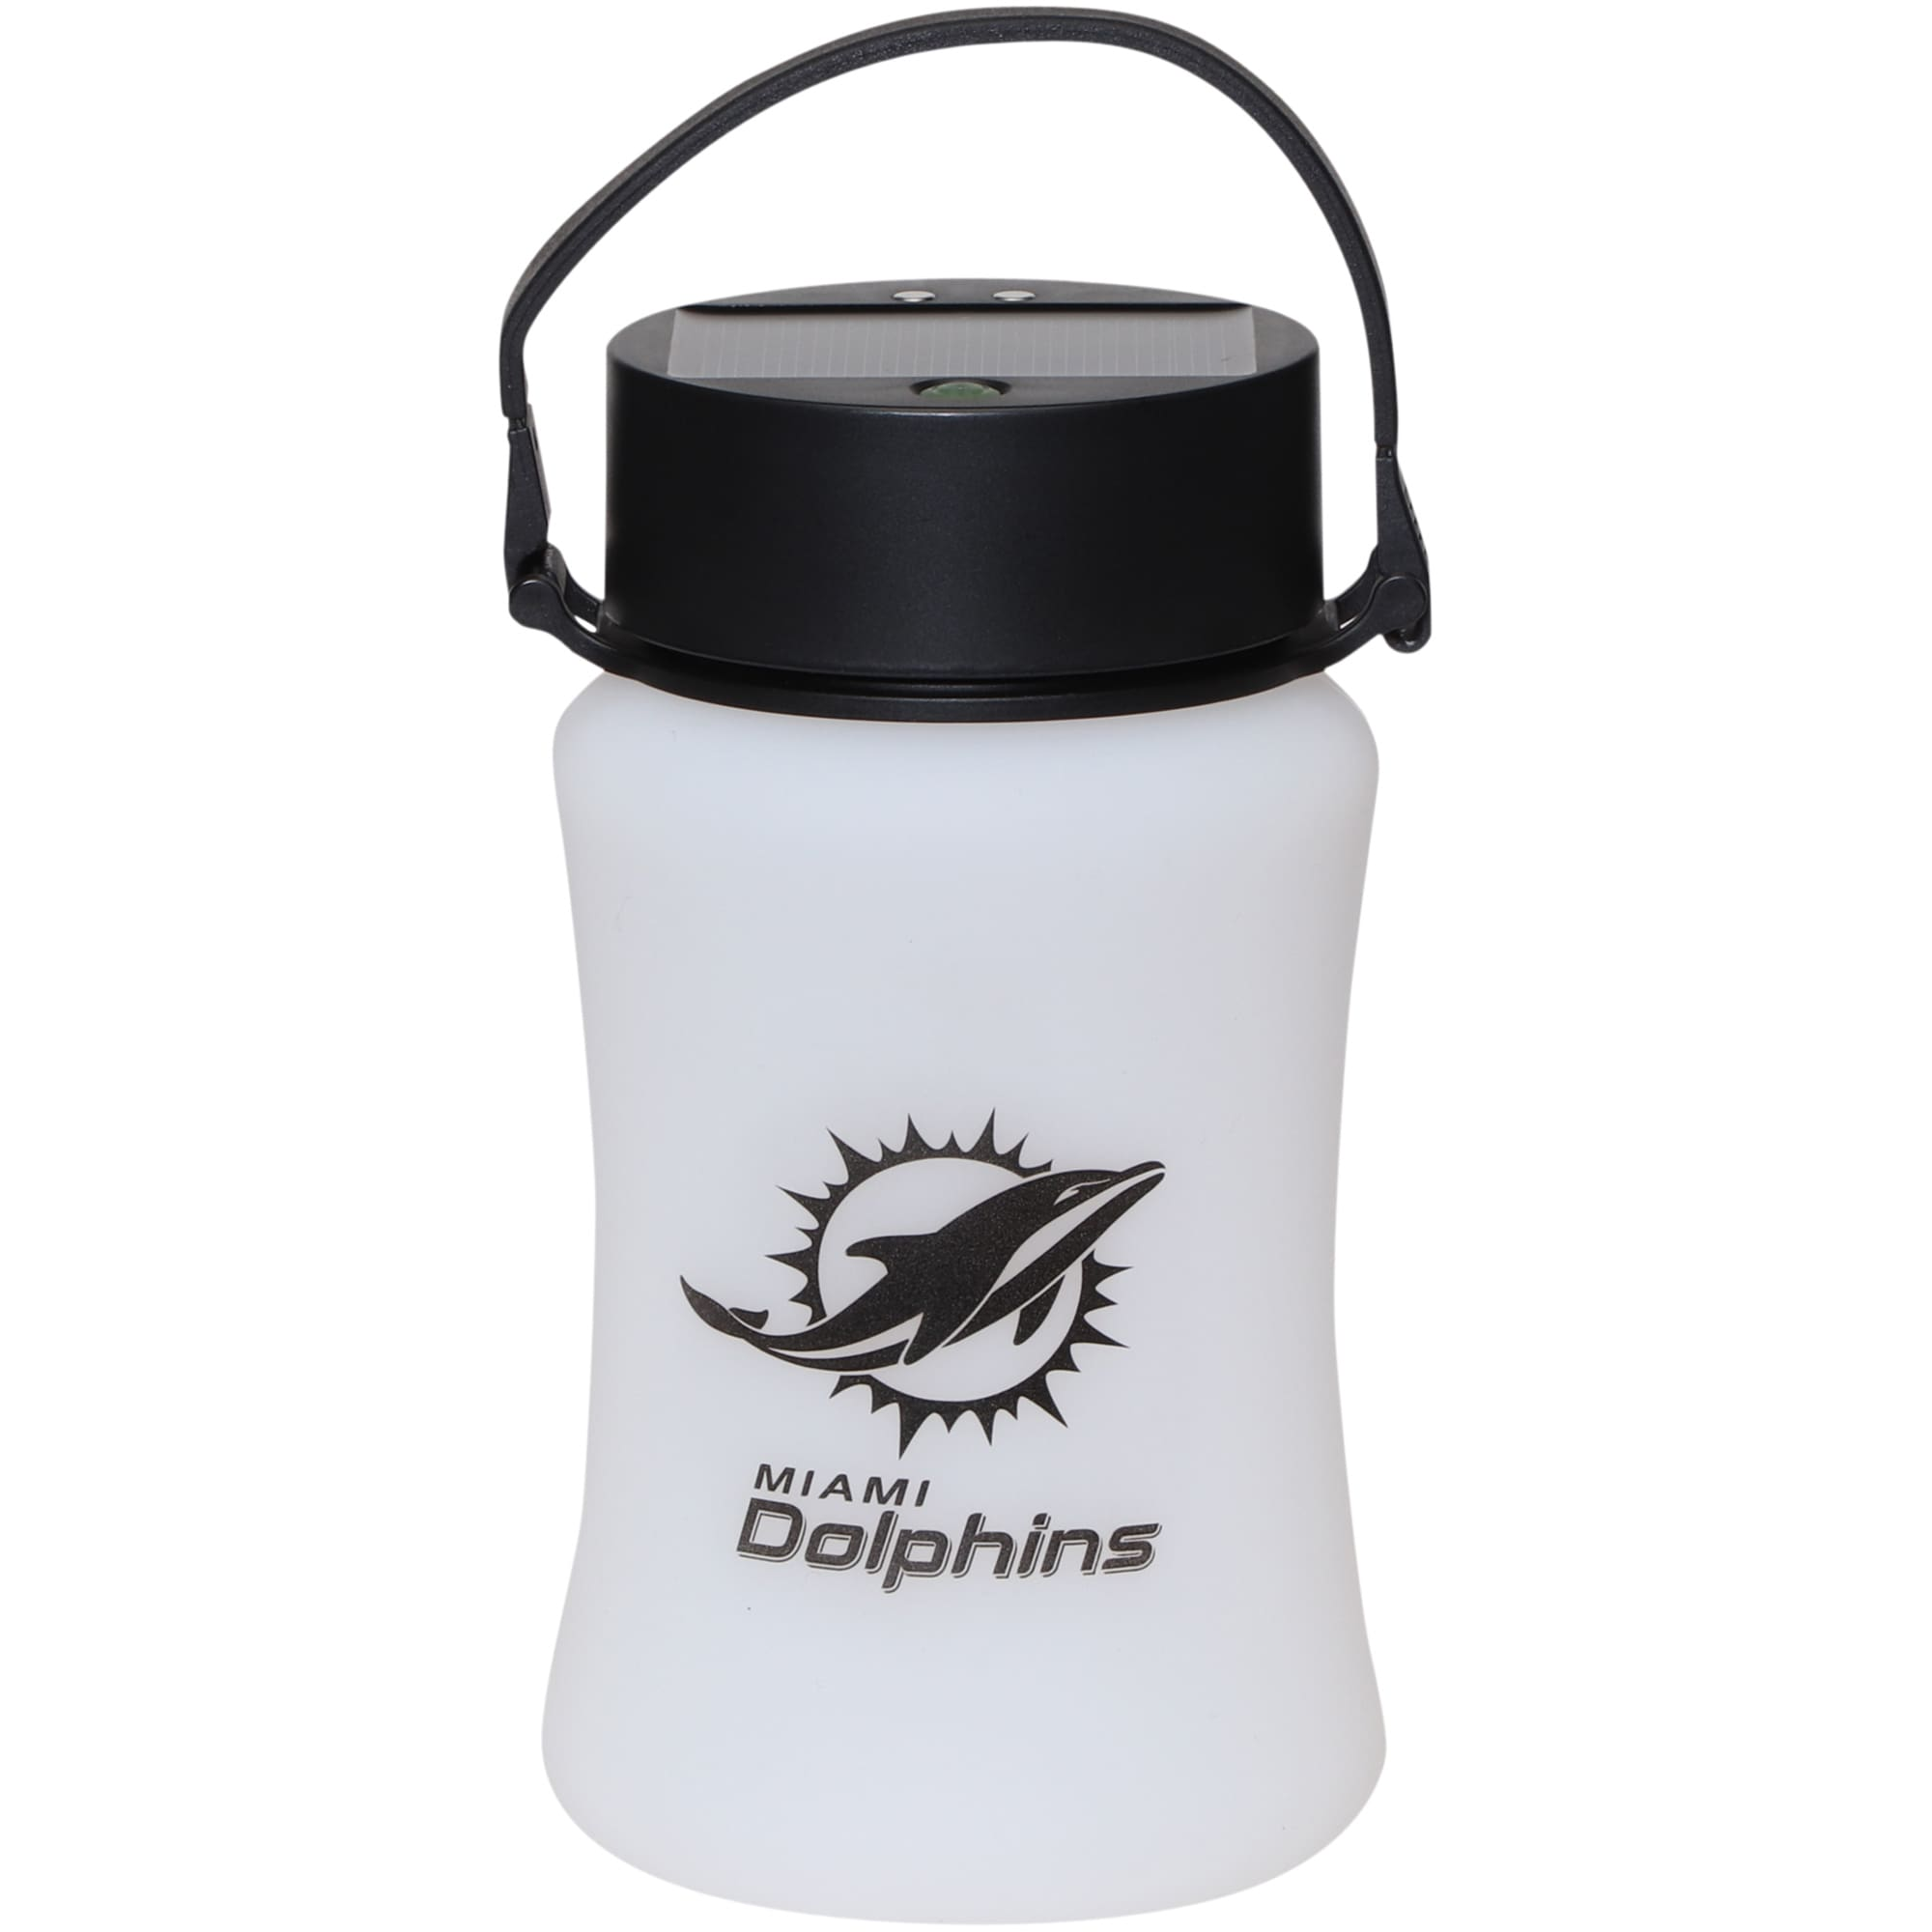 Miami Dolphins Frosted Silicone Solar Lantern